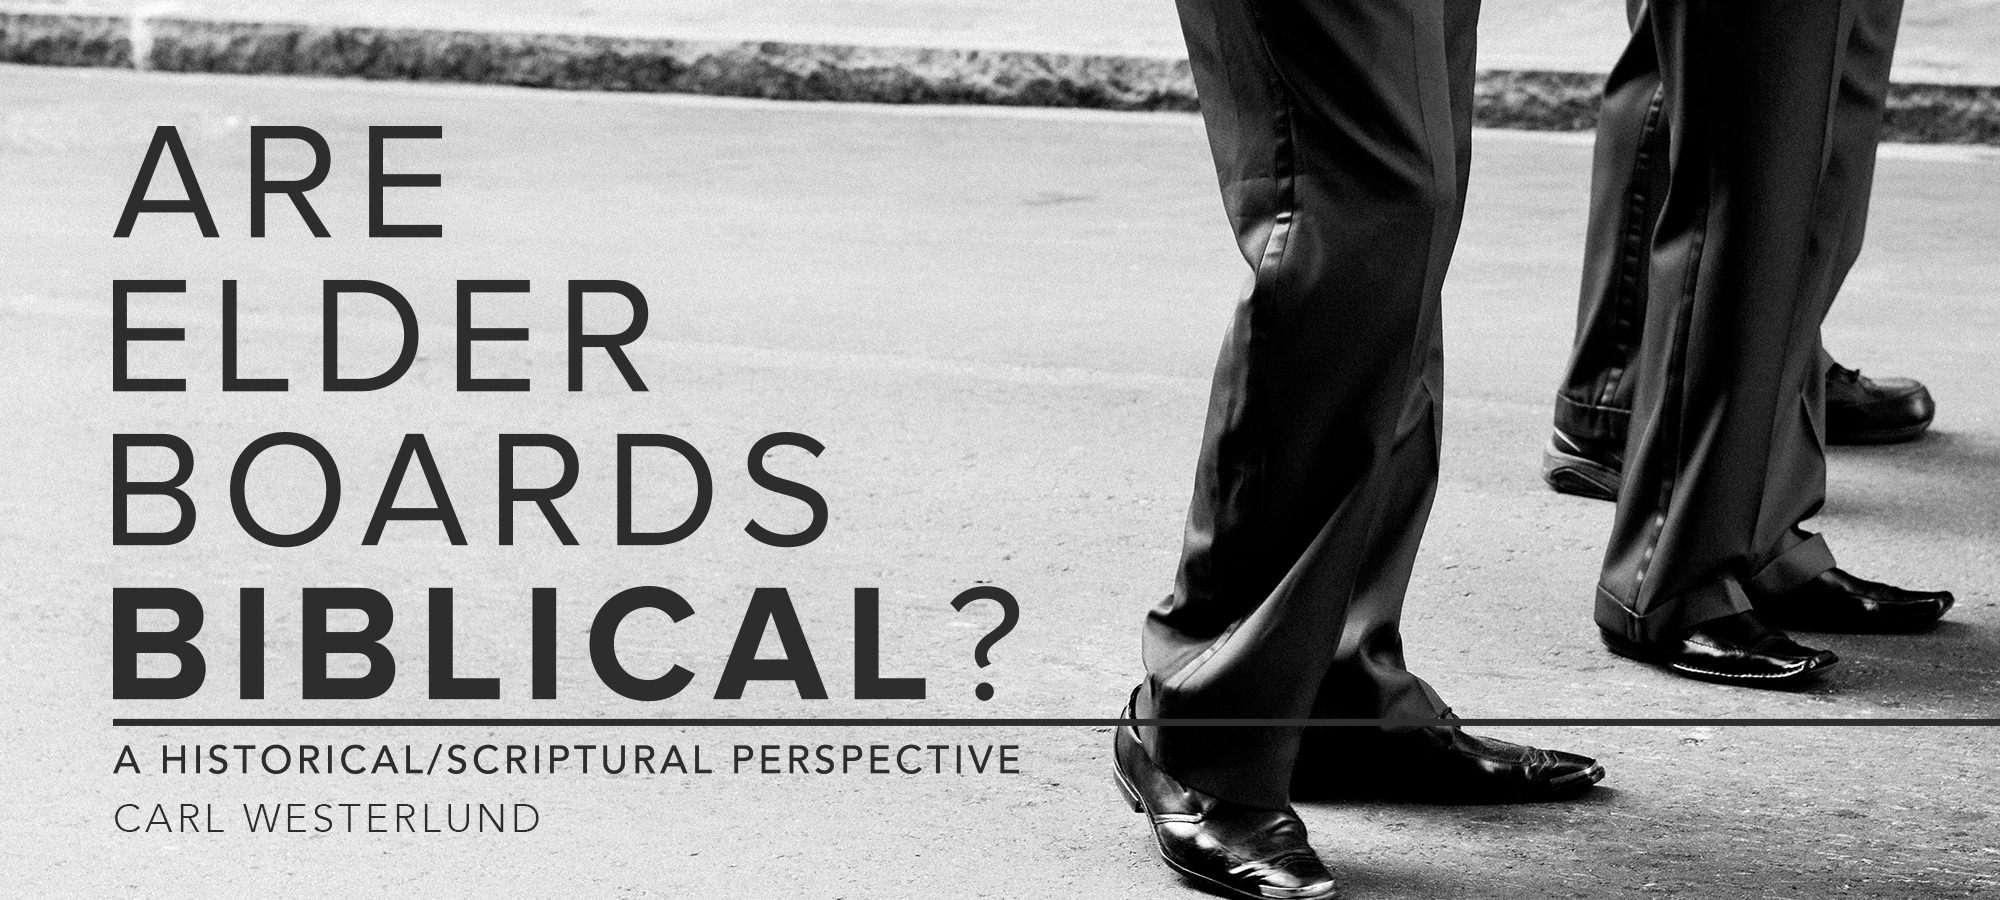 Are Elder Boards Biblical? - A Historical/Scriptural Perspective